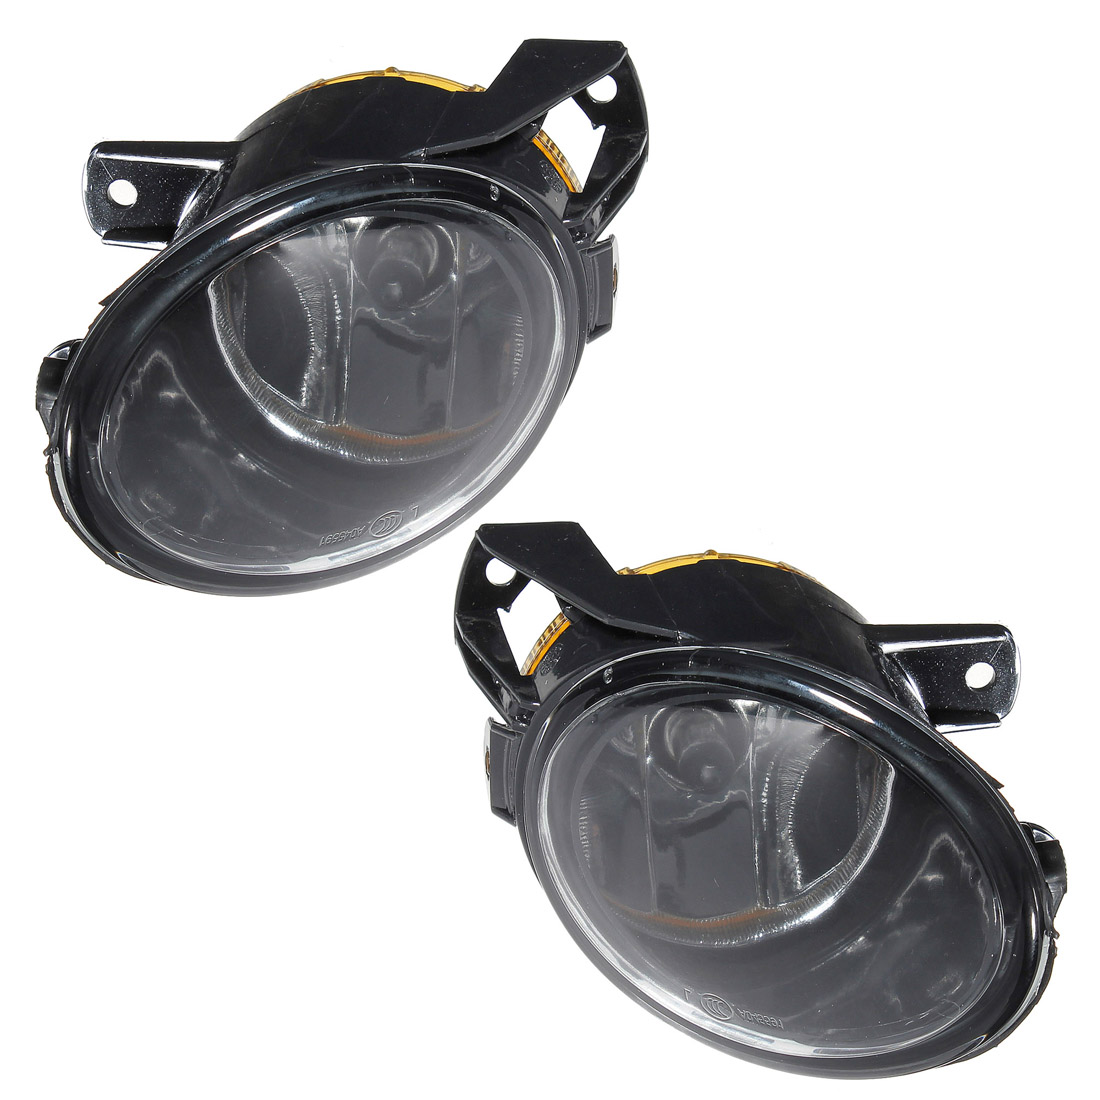 все цены на 1Pcs Left And Right Hand LH Driving Fog Lamp Fog Light For VW 2006-2009 Passat B6 3C Sedan Wagon Variant онлайн